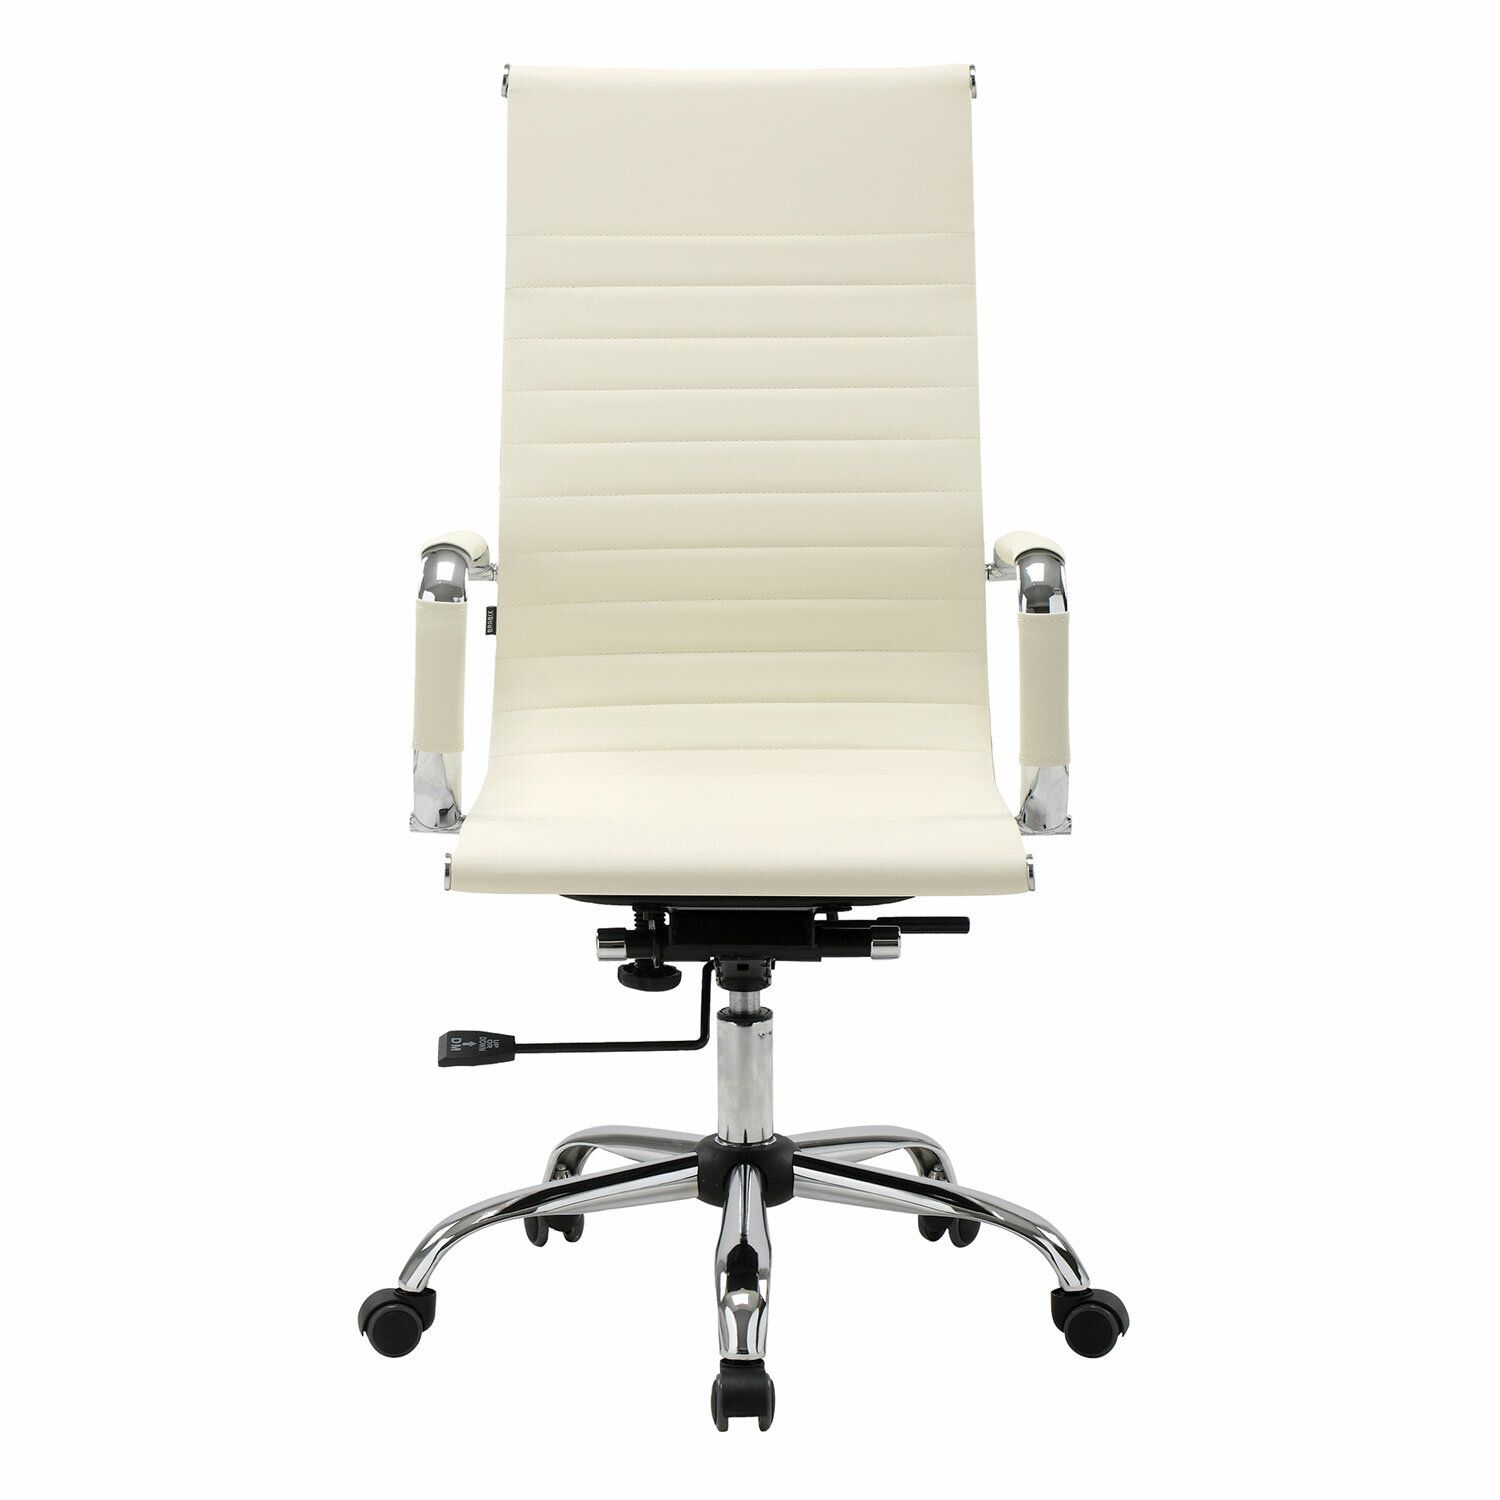 """Office chair BRABIX """"Energy EX-509"""", recycled leather, chrome, beige"""